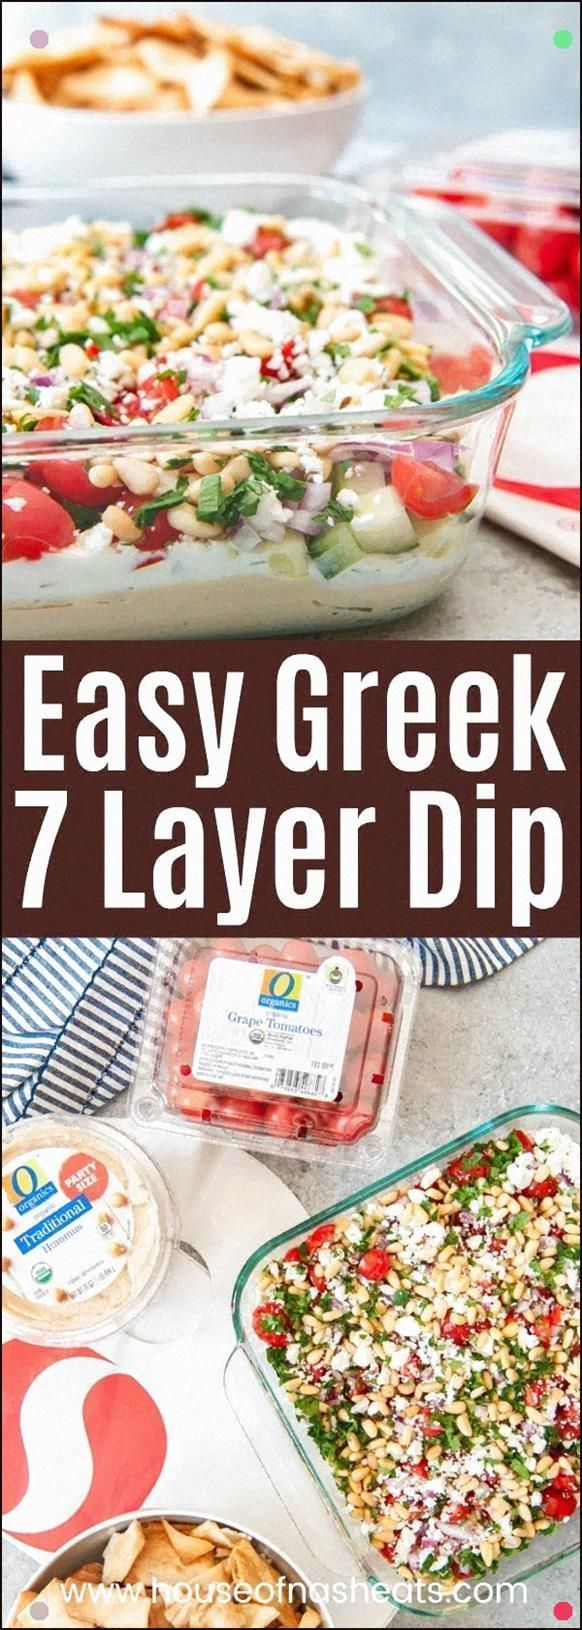 This Easy Greek 7 Layer Dip Is Loaded With All The Best Flavors Of The Greece In Dippable Form Garl